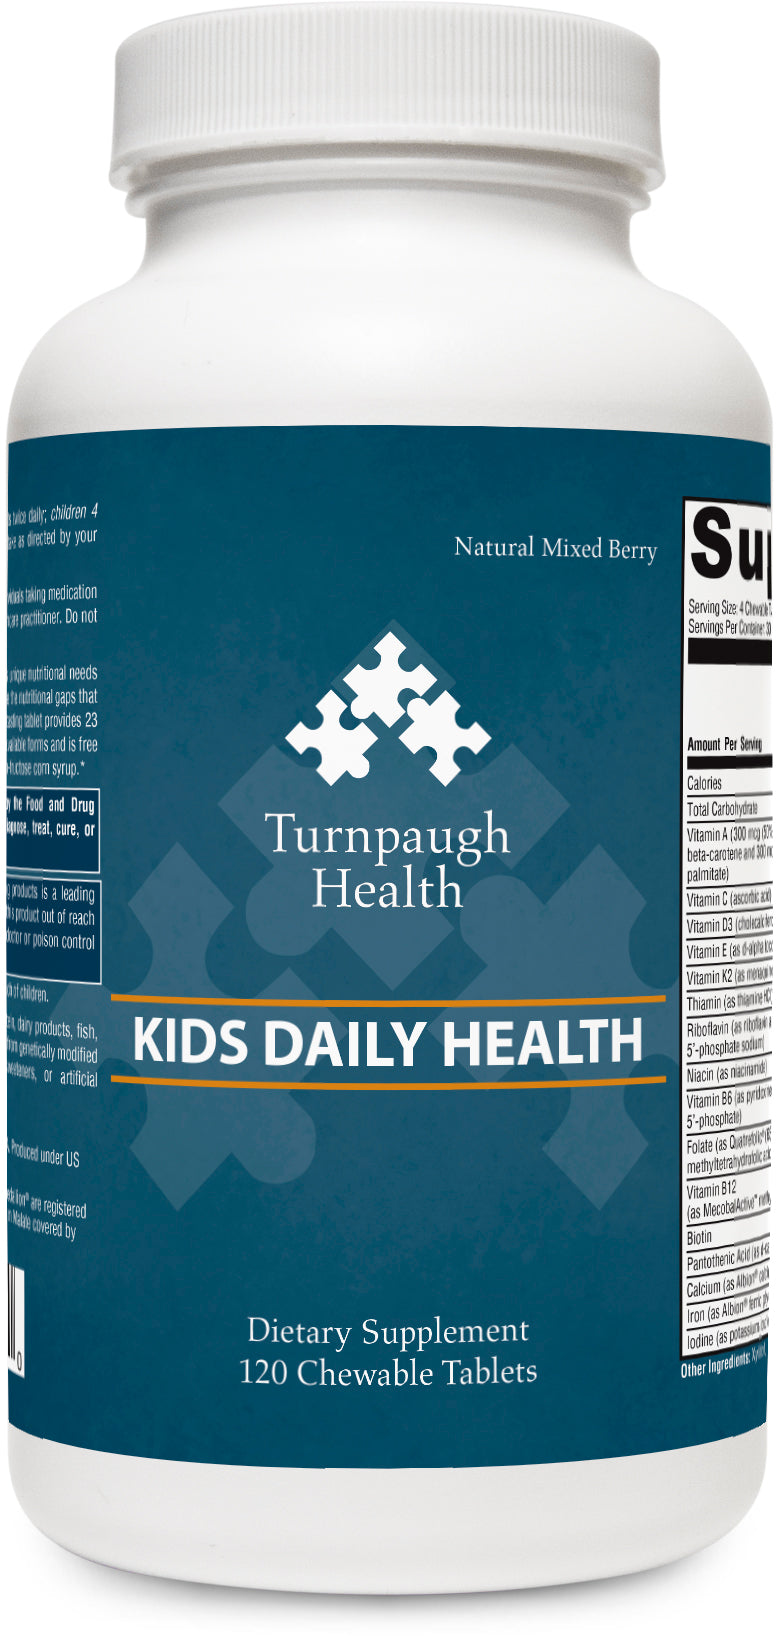 Kids Daily Health Chewable Vitamins 120 chewable tablets